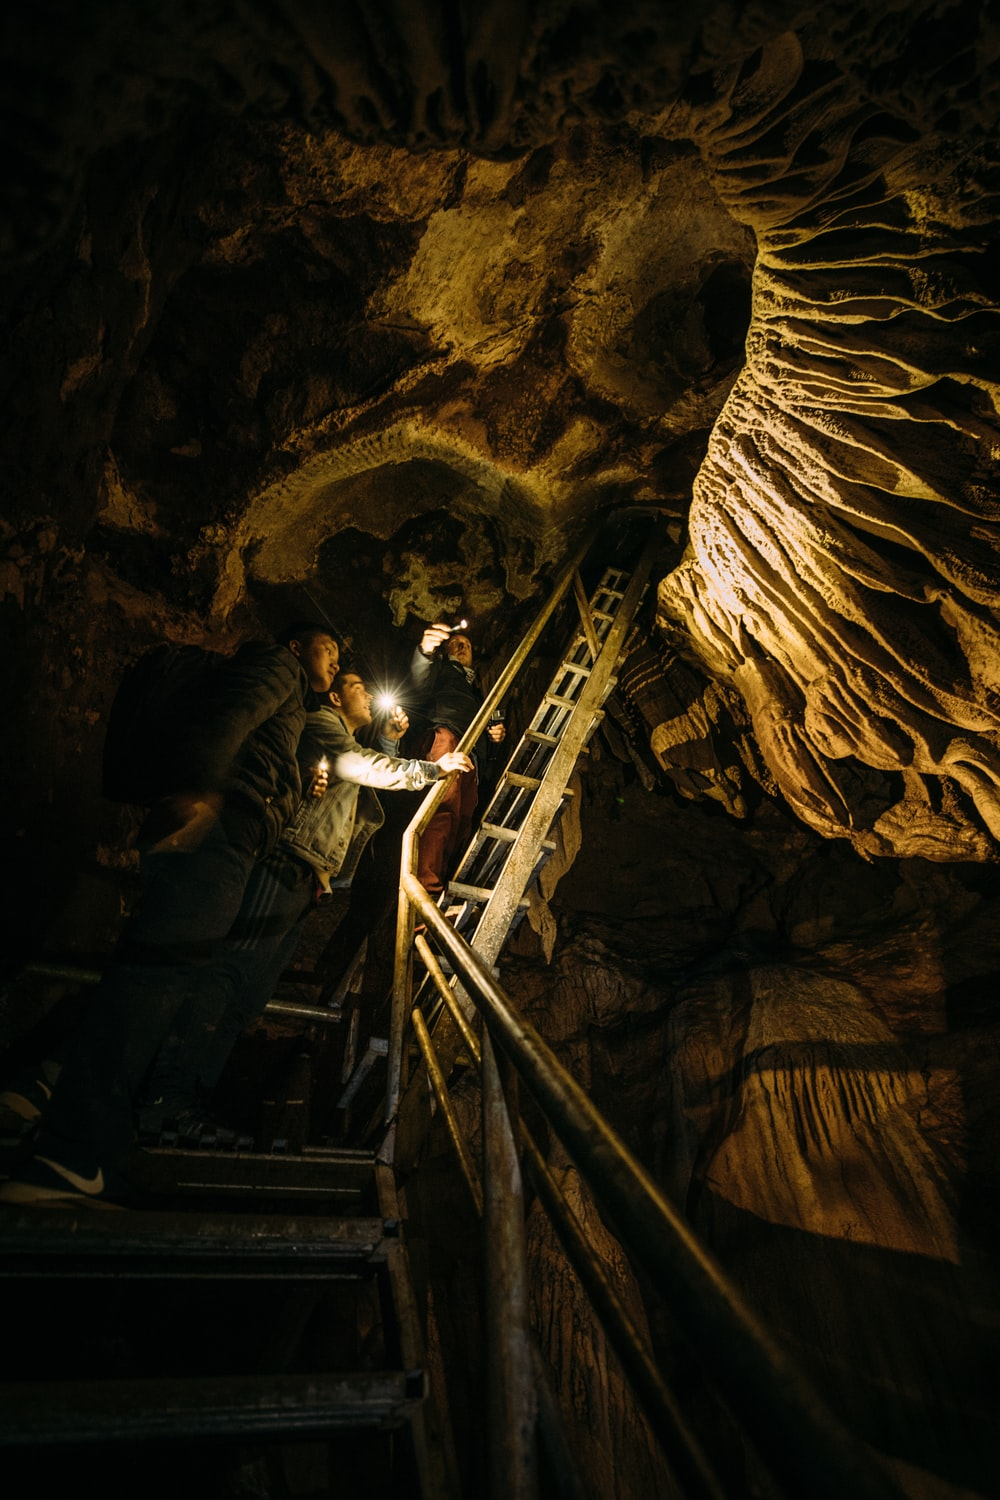 Caving Vs. Spelunking- Which Is The Best One?